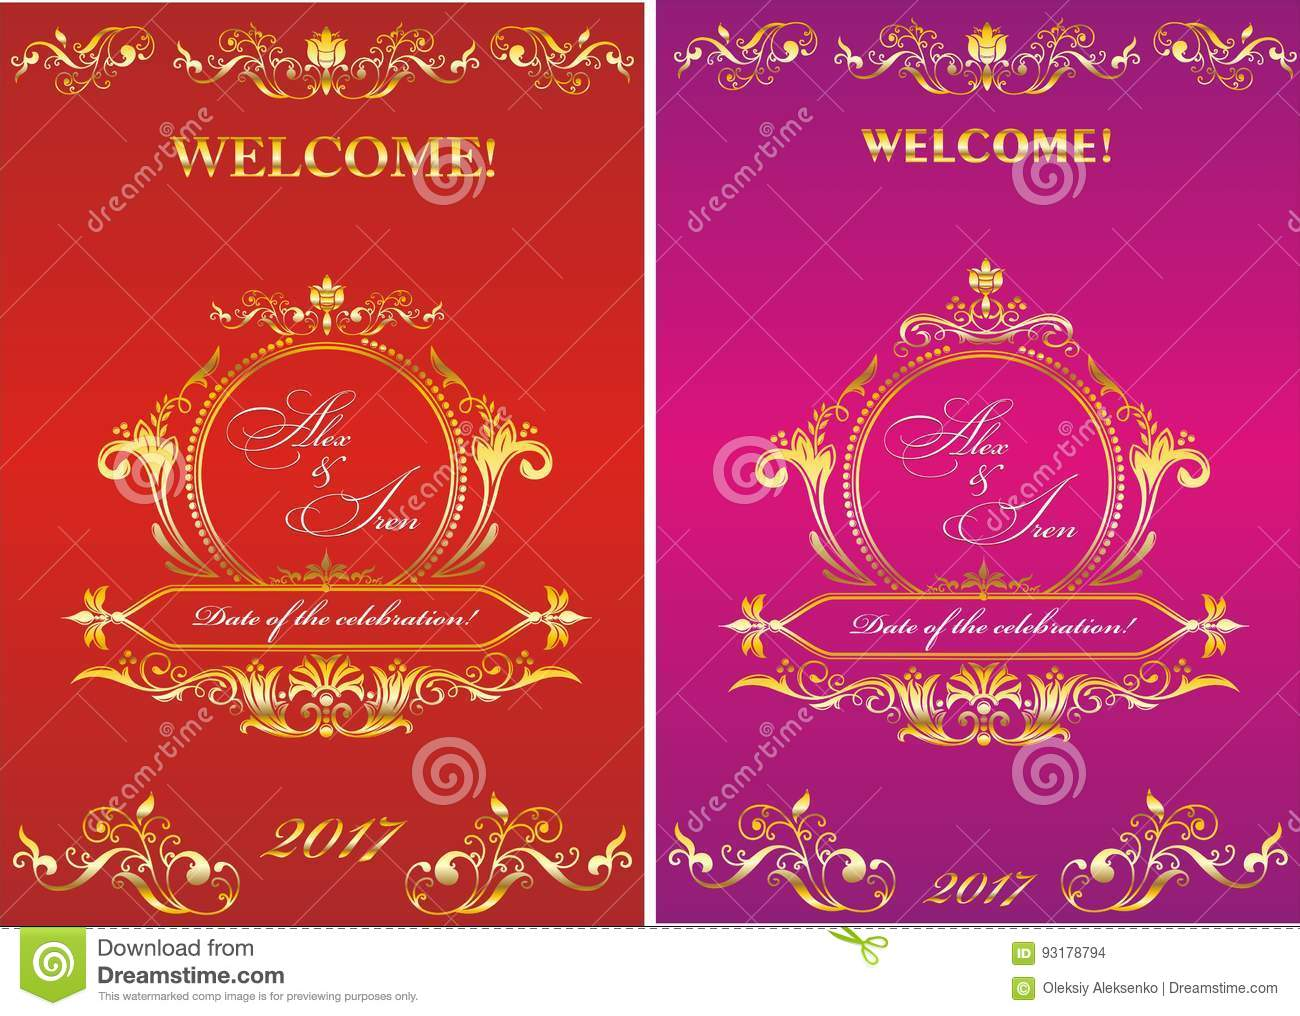 Template Invitation To The Wedding. Stock Vector - Illustration of ...